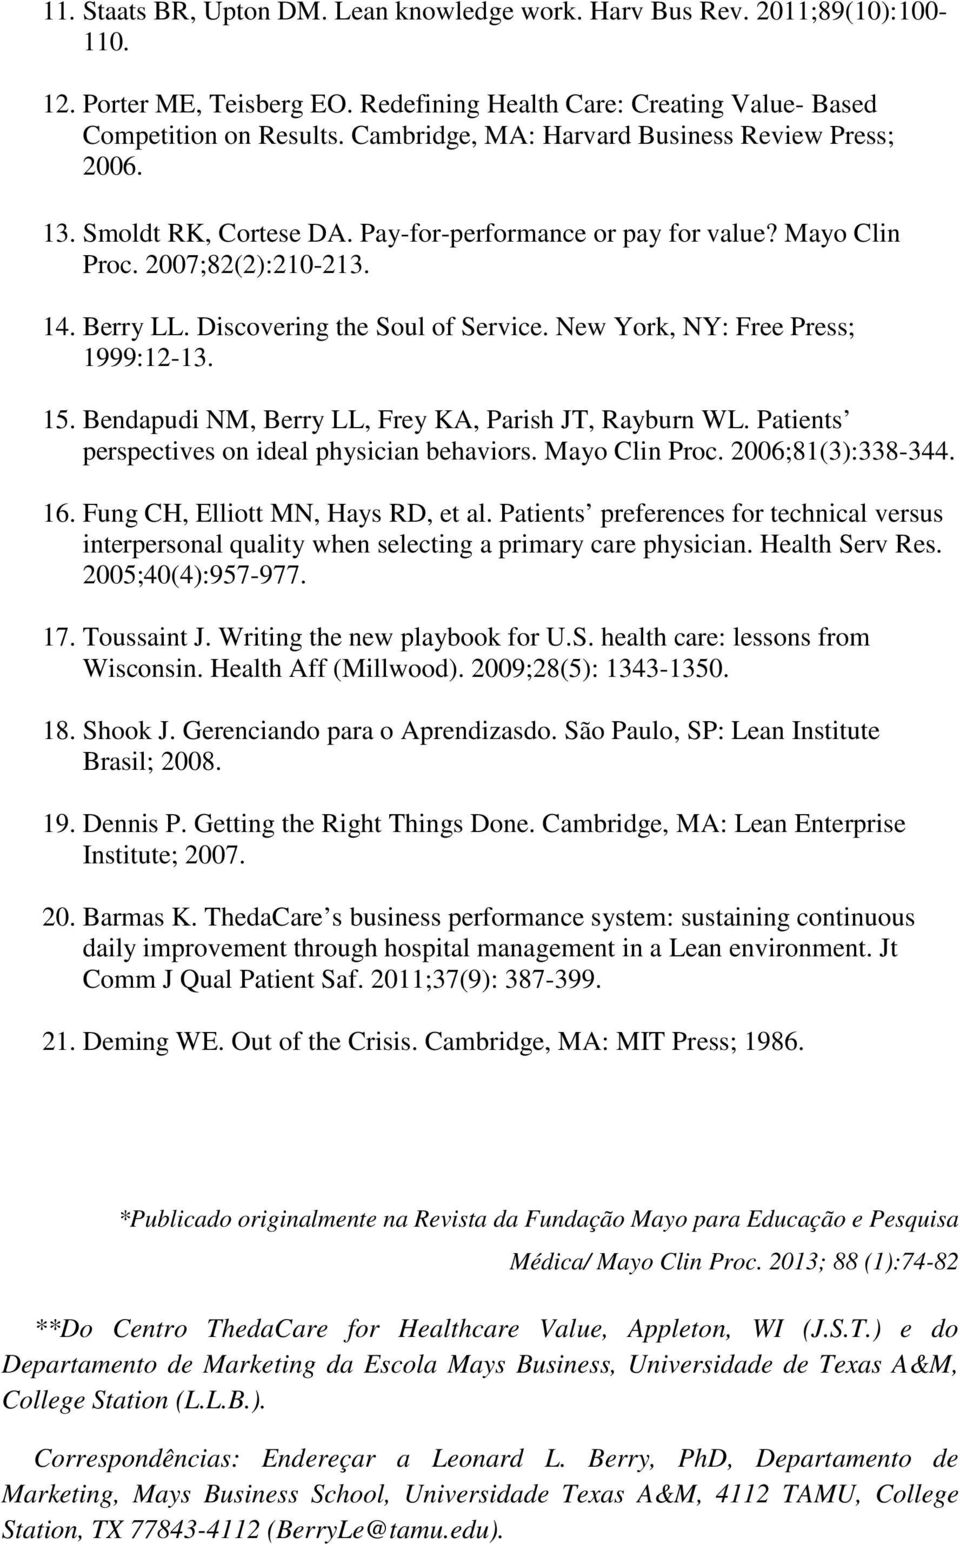 New York, NY: Free Press; 1999:12-13. 15. Bendapudi NM, Berry LL, Frey KA, Parish JT, Rayburn WL. Patients perspectives on ideal physician behaviors. Mayo Clin Proc. 2006;81(3):338-344. 16.